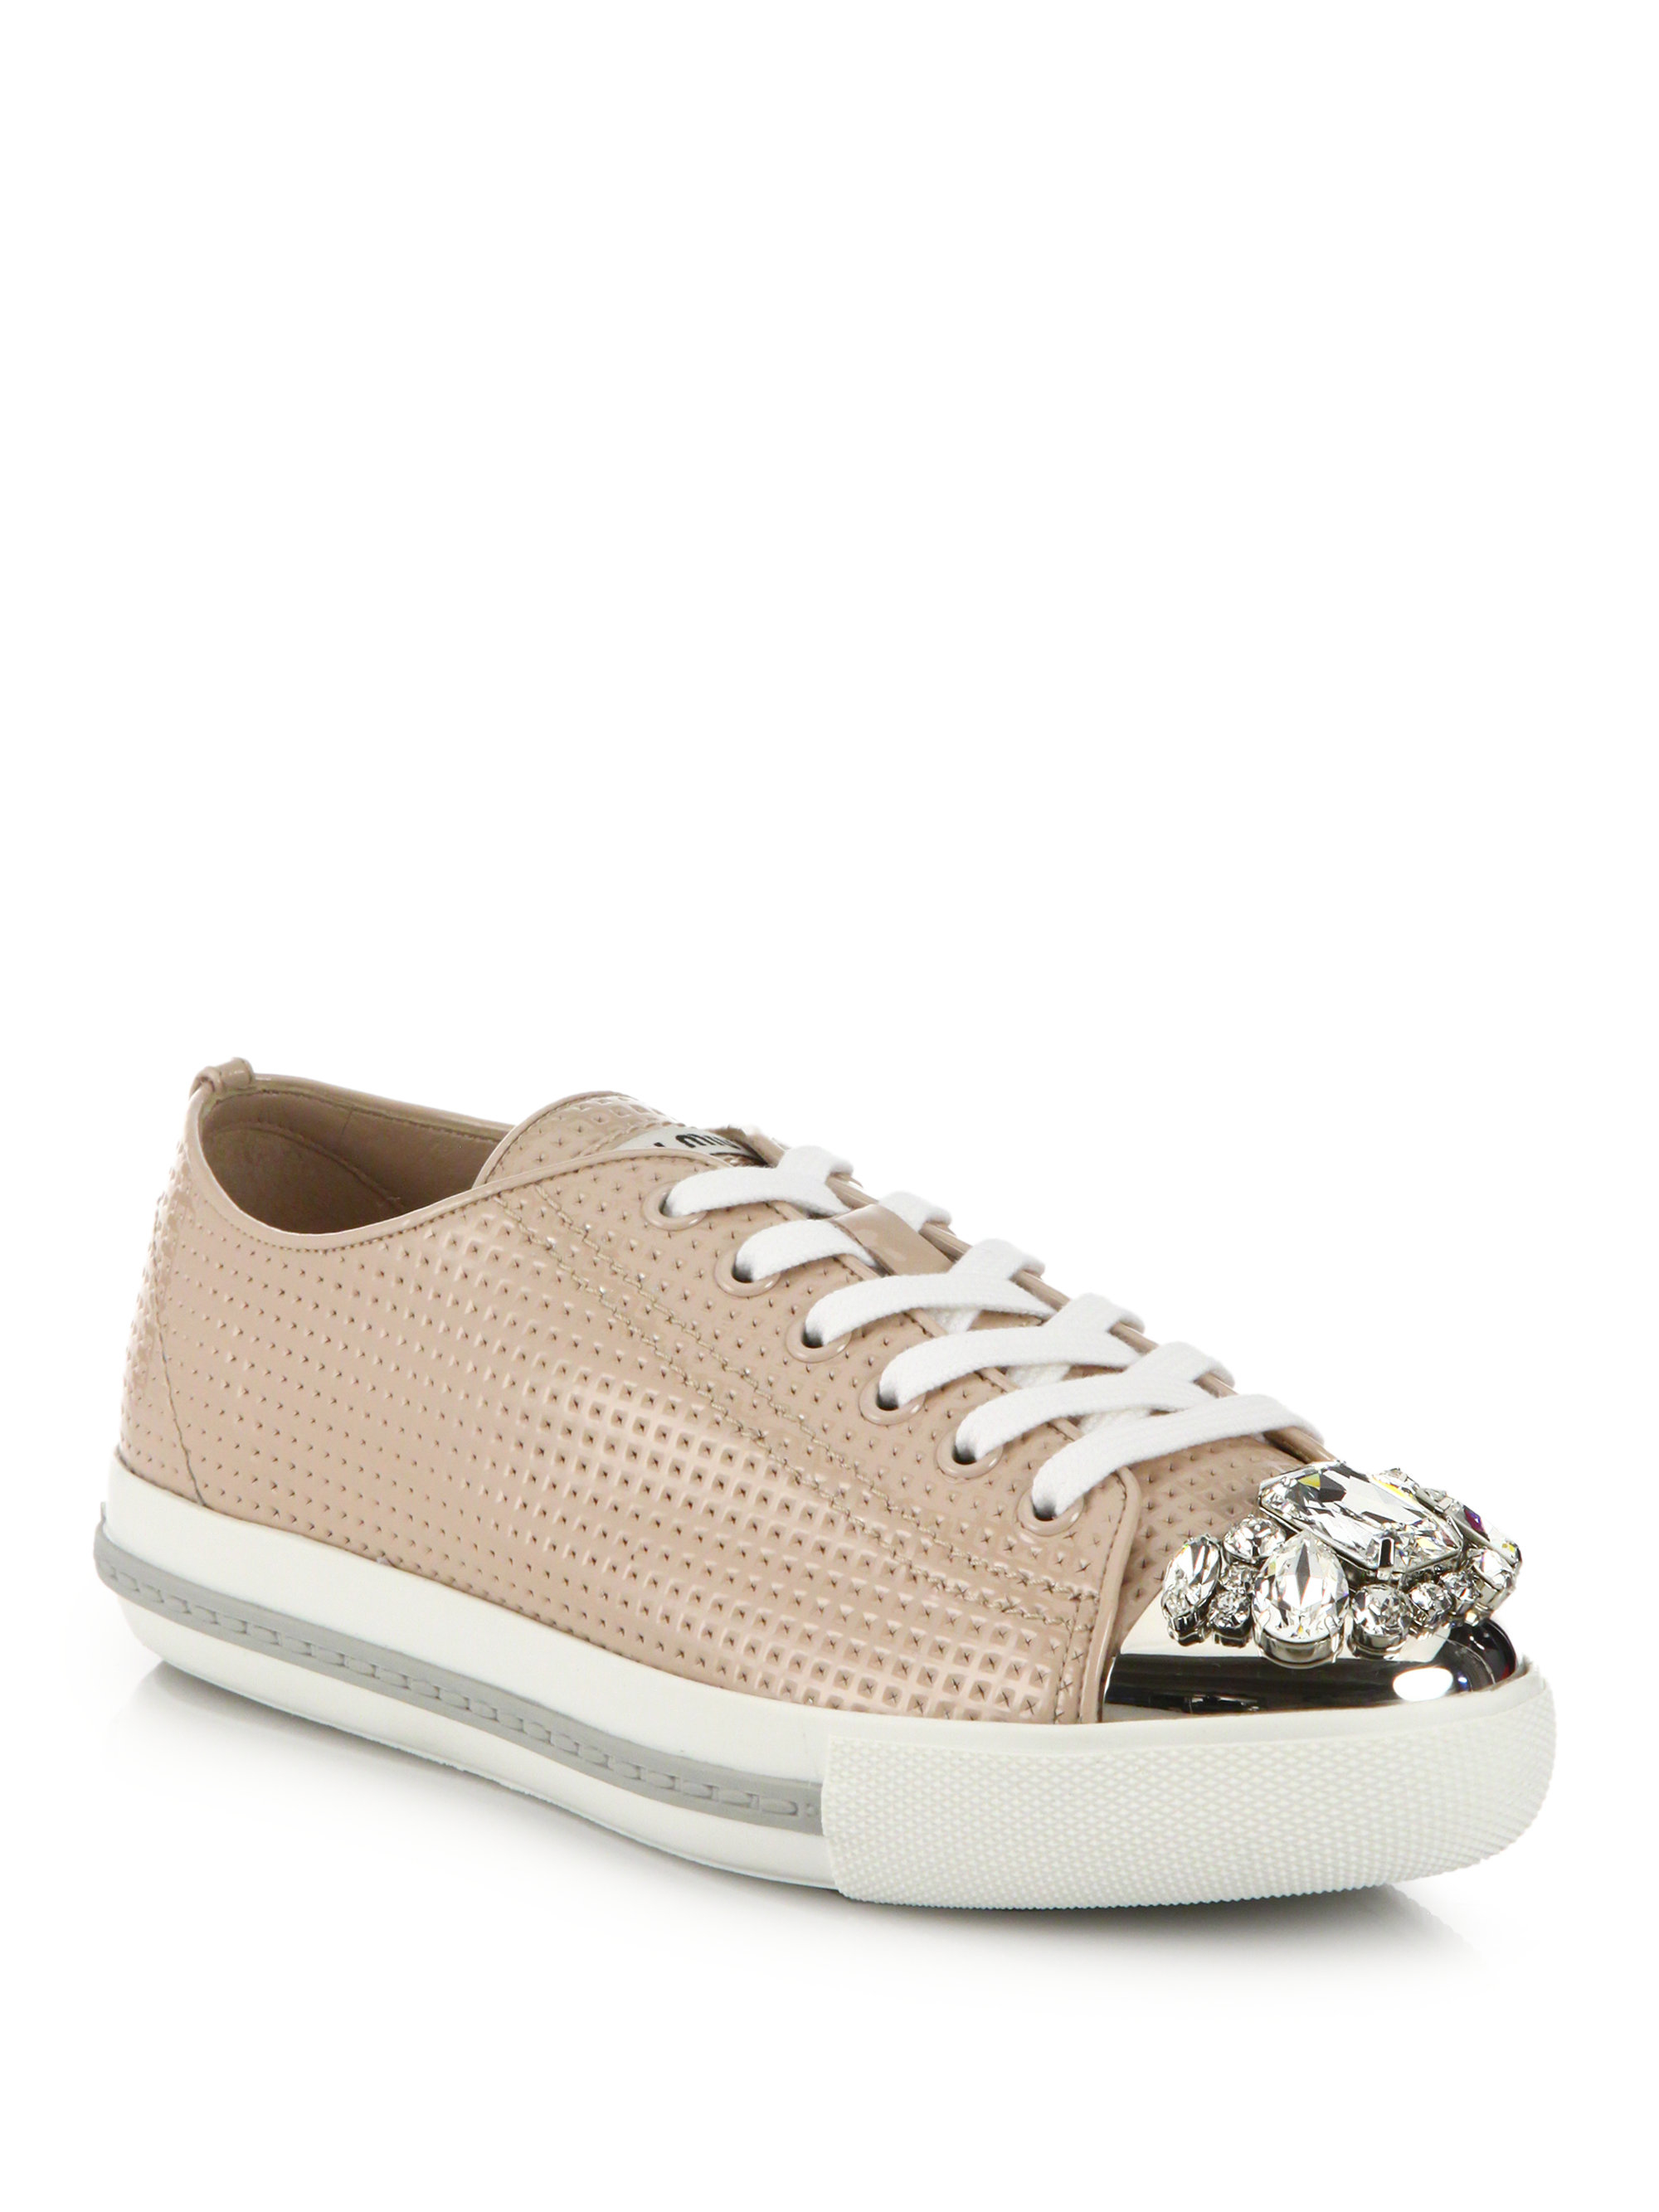 Womens Crystal-Striped Leather Platform Sneakers Miu Miu dR9as21W